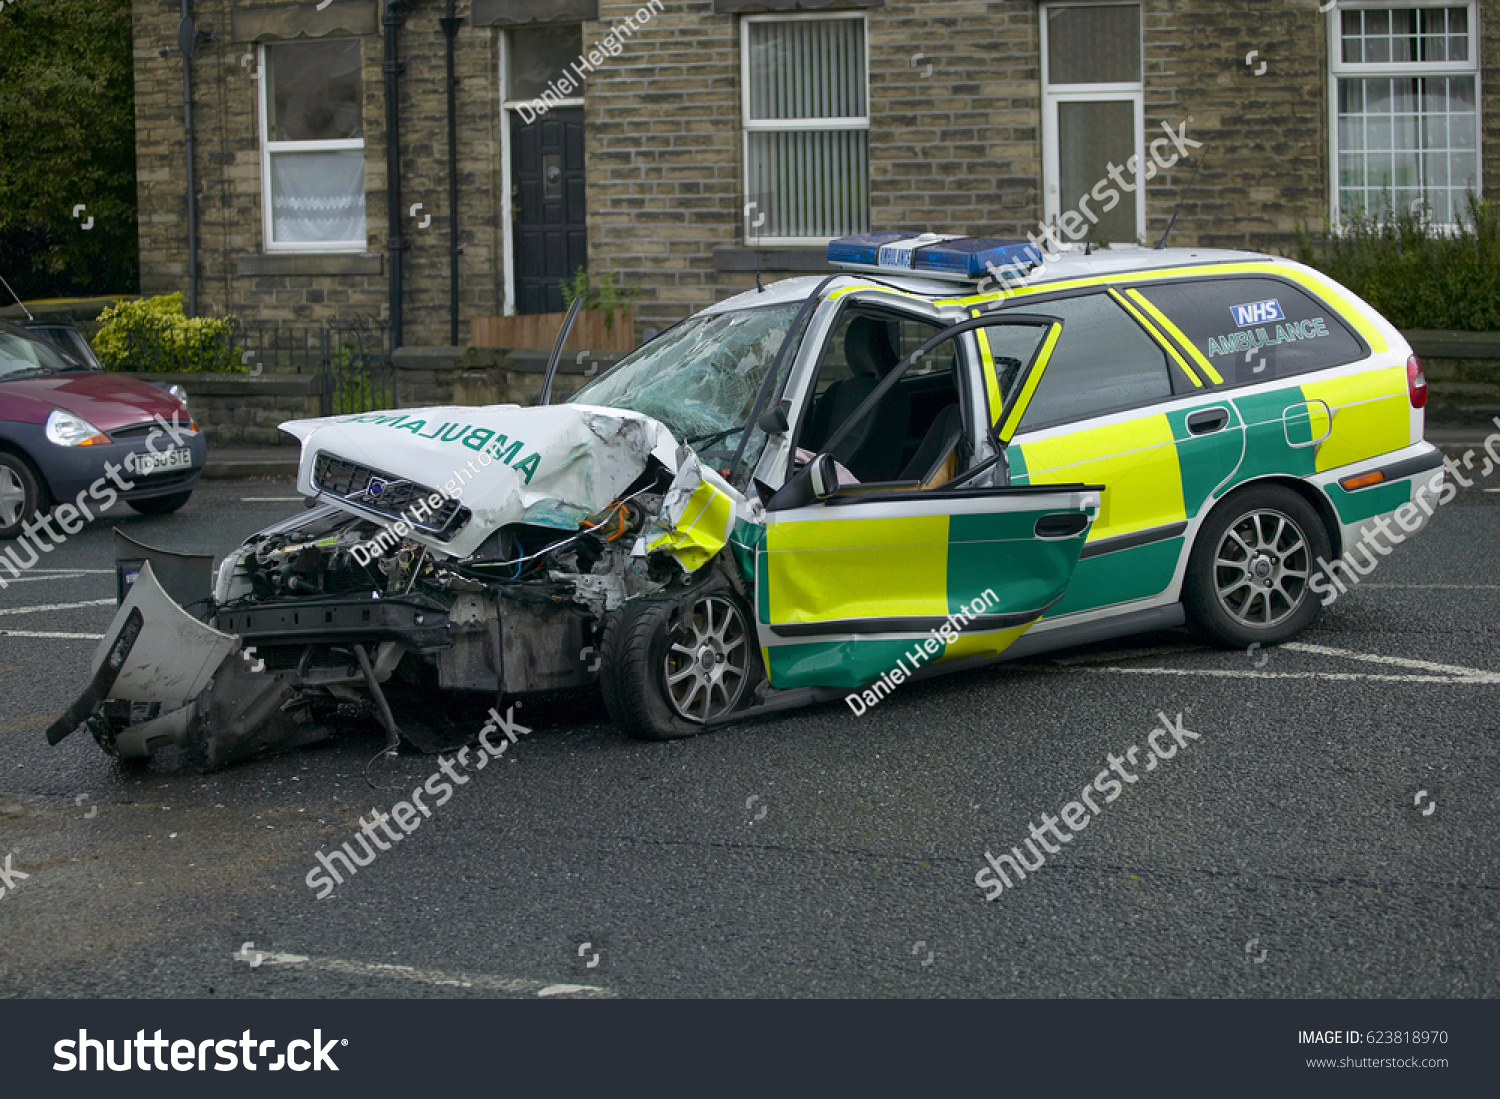 Volvo V 40 Ambulance Wrecked Collision While Stock Photo Edit Now 2004 V4 0 Wagon V40 In On Emergency Call Yorkshire England Uk